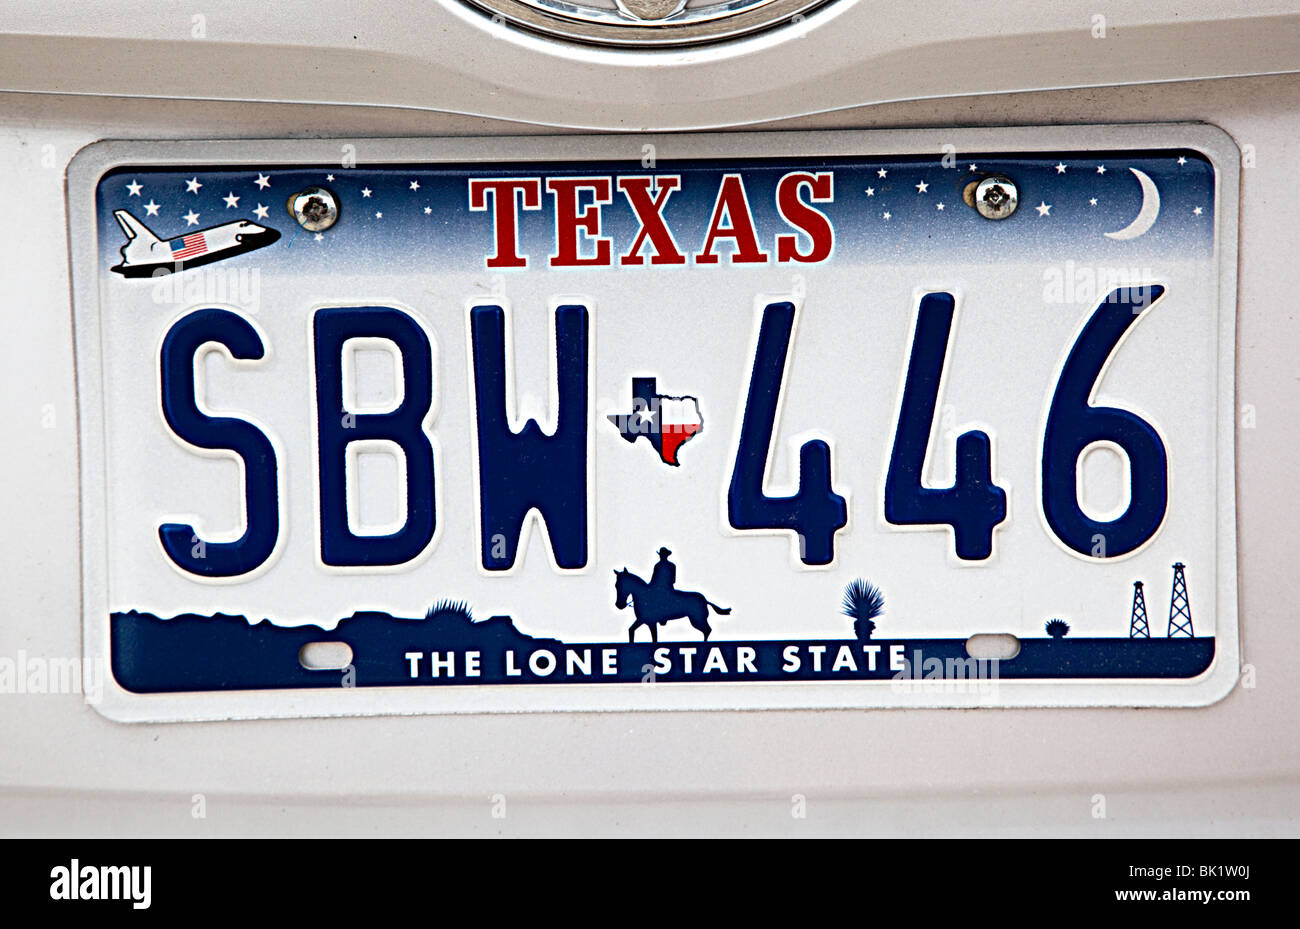 Texas the Lone Star State vehicle number plate Texas USA - Stock Image